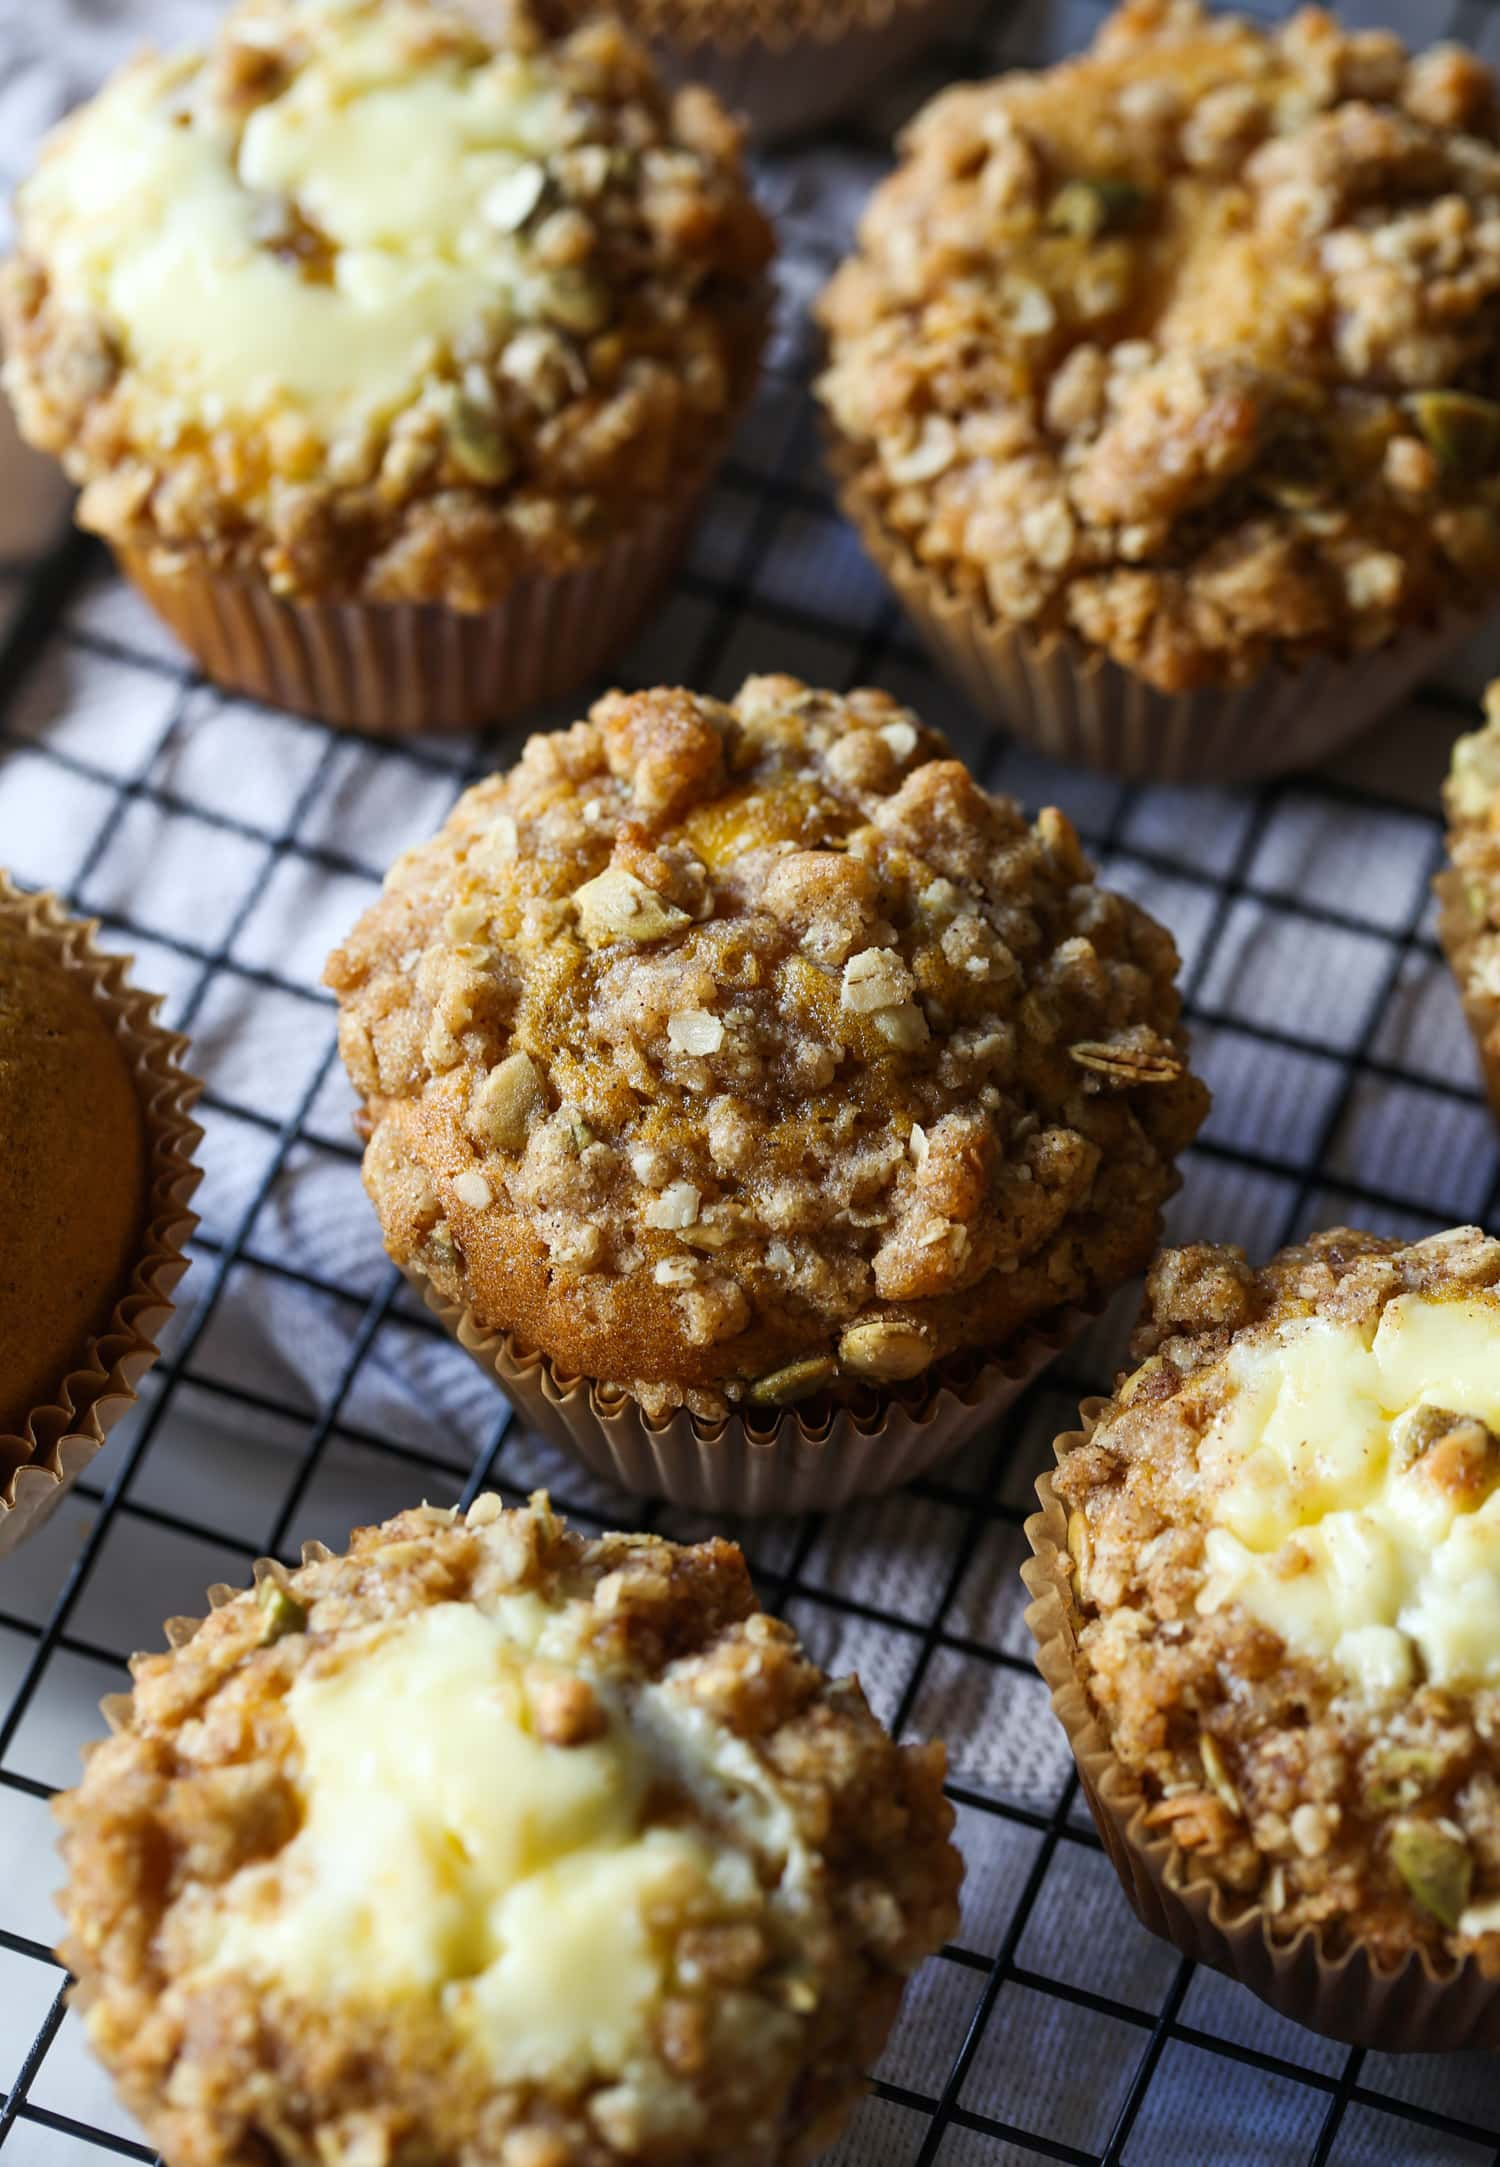 pumpkin muffin with crumble topping on a wire rack